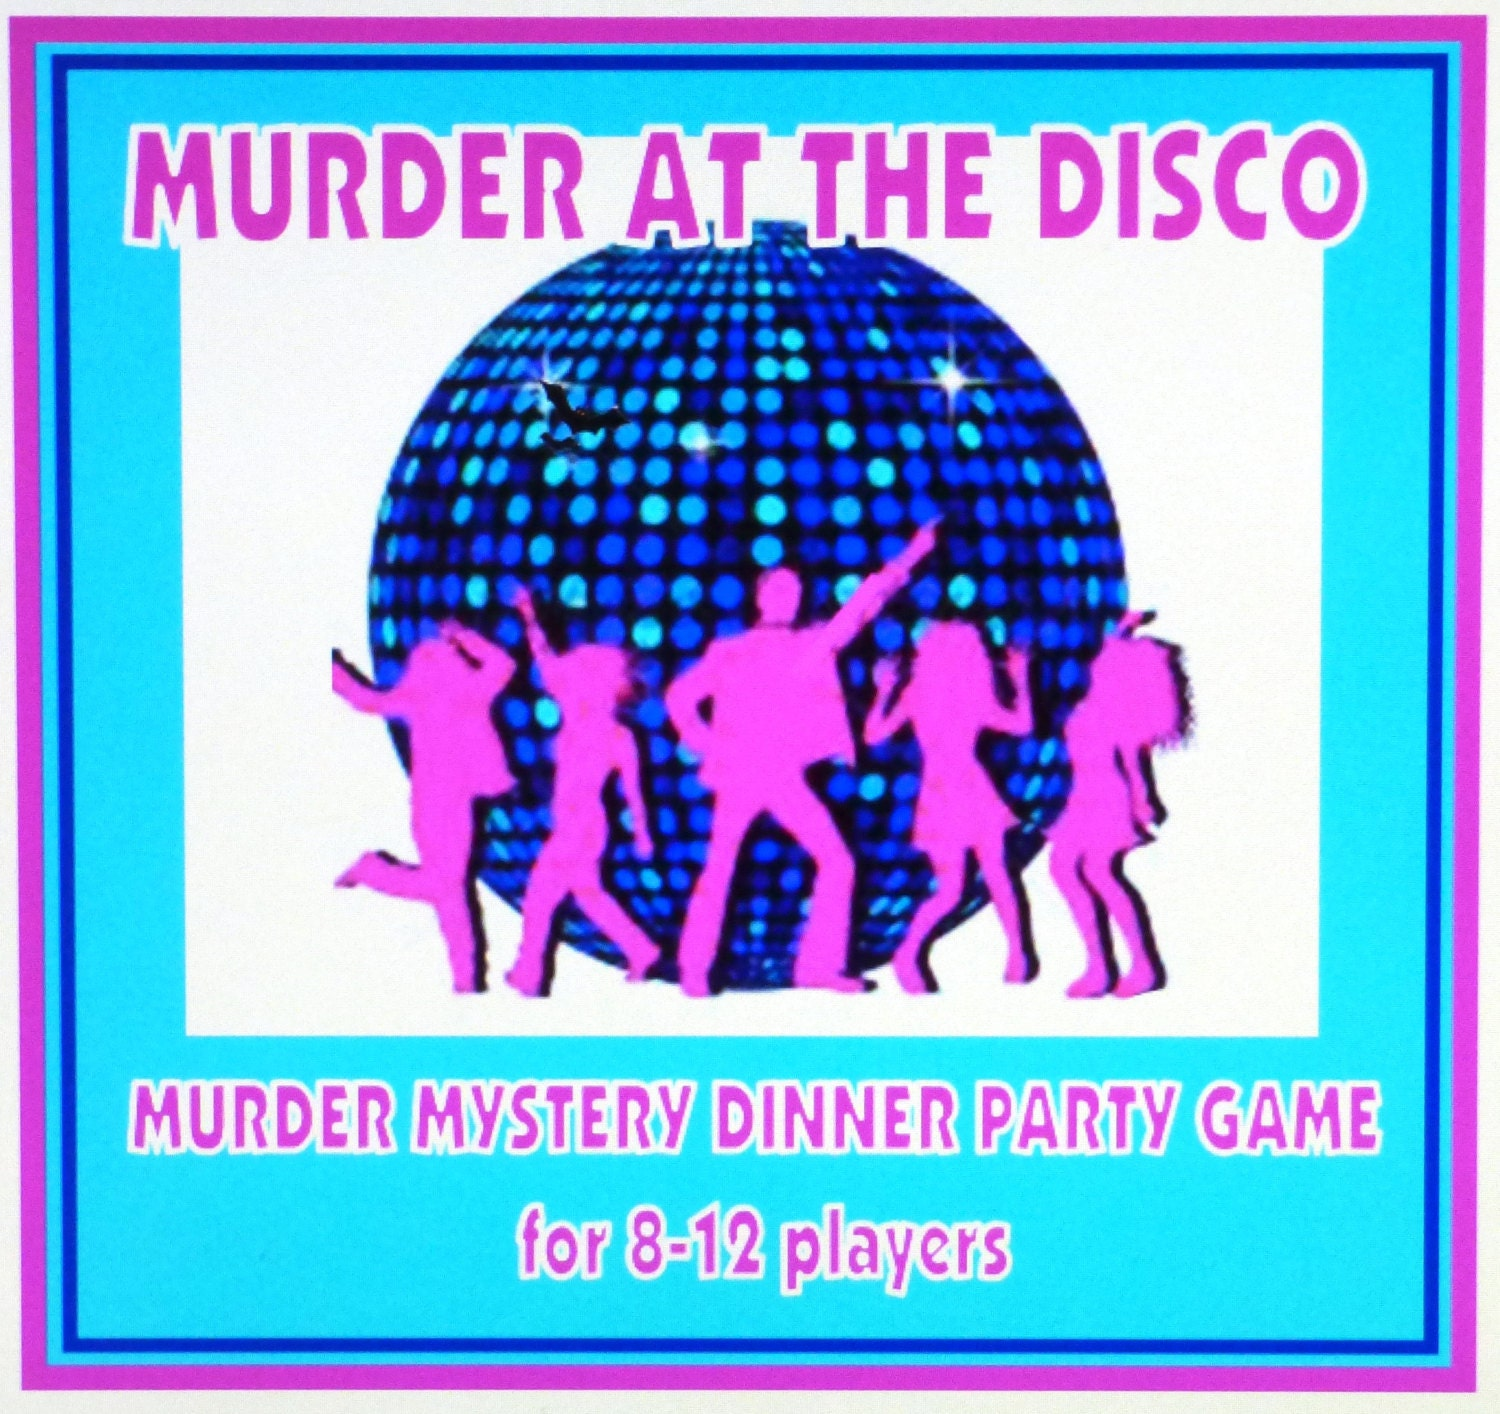 1970's Murder Mystery Dinner Party Game For 8-12 Players